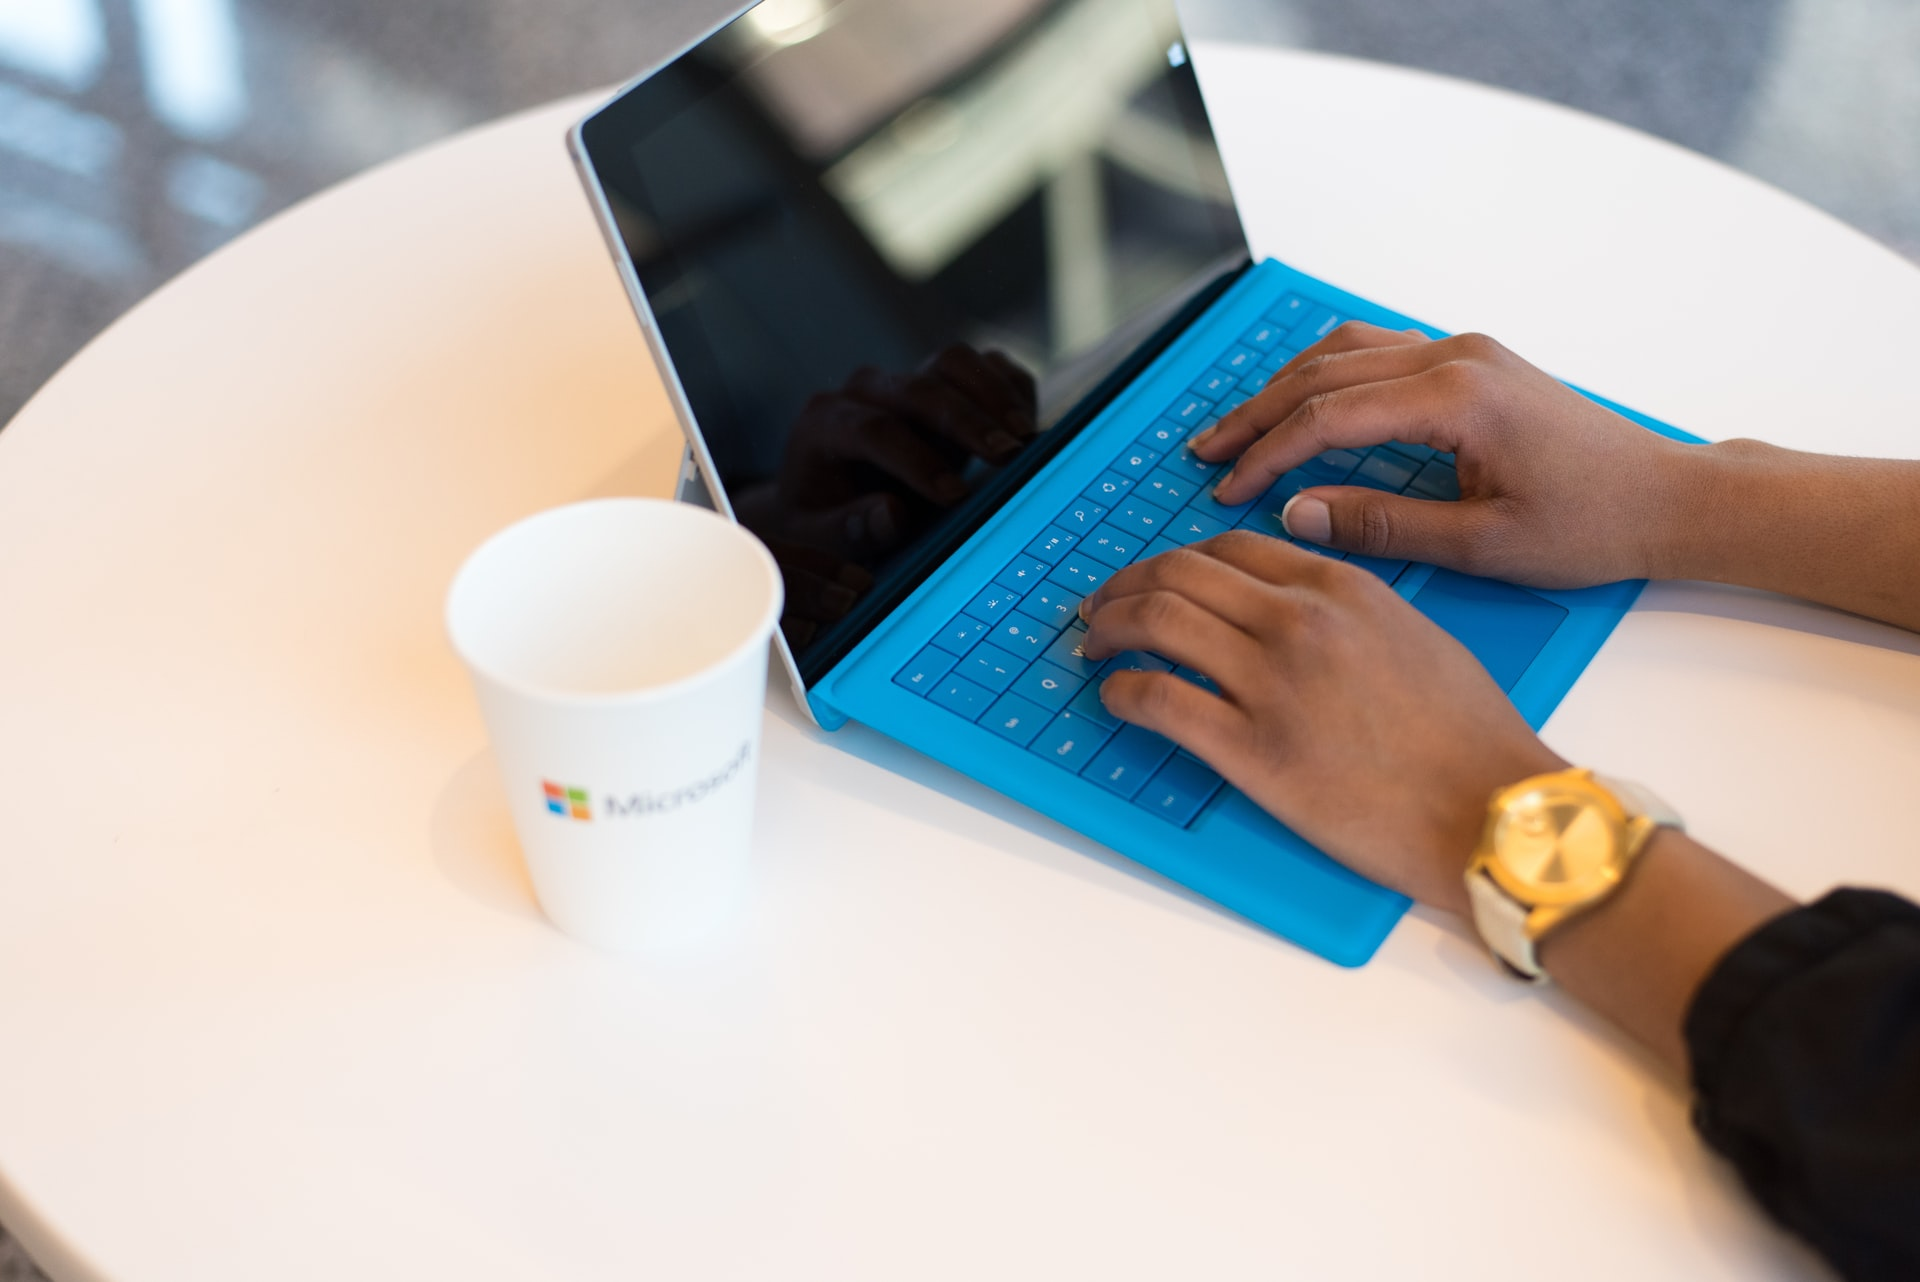 Azure and WVD: the ideal hosted virtual desktop solution in the cloud - image shows a woman using a laptop to remotely access her workspace